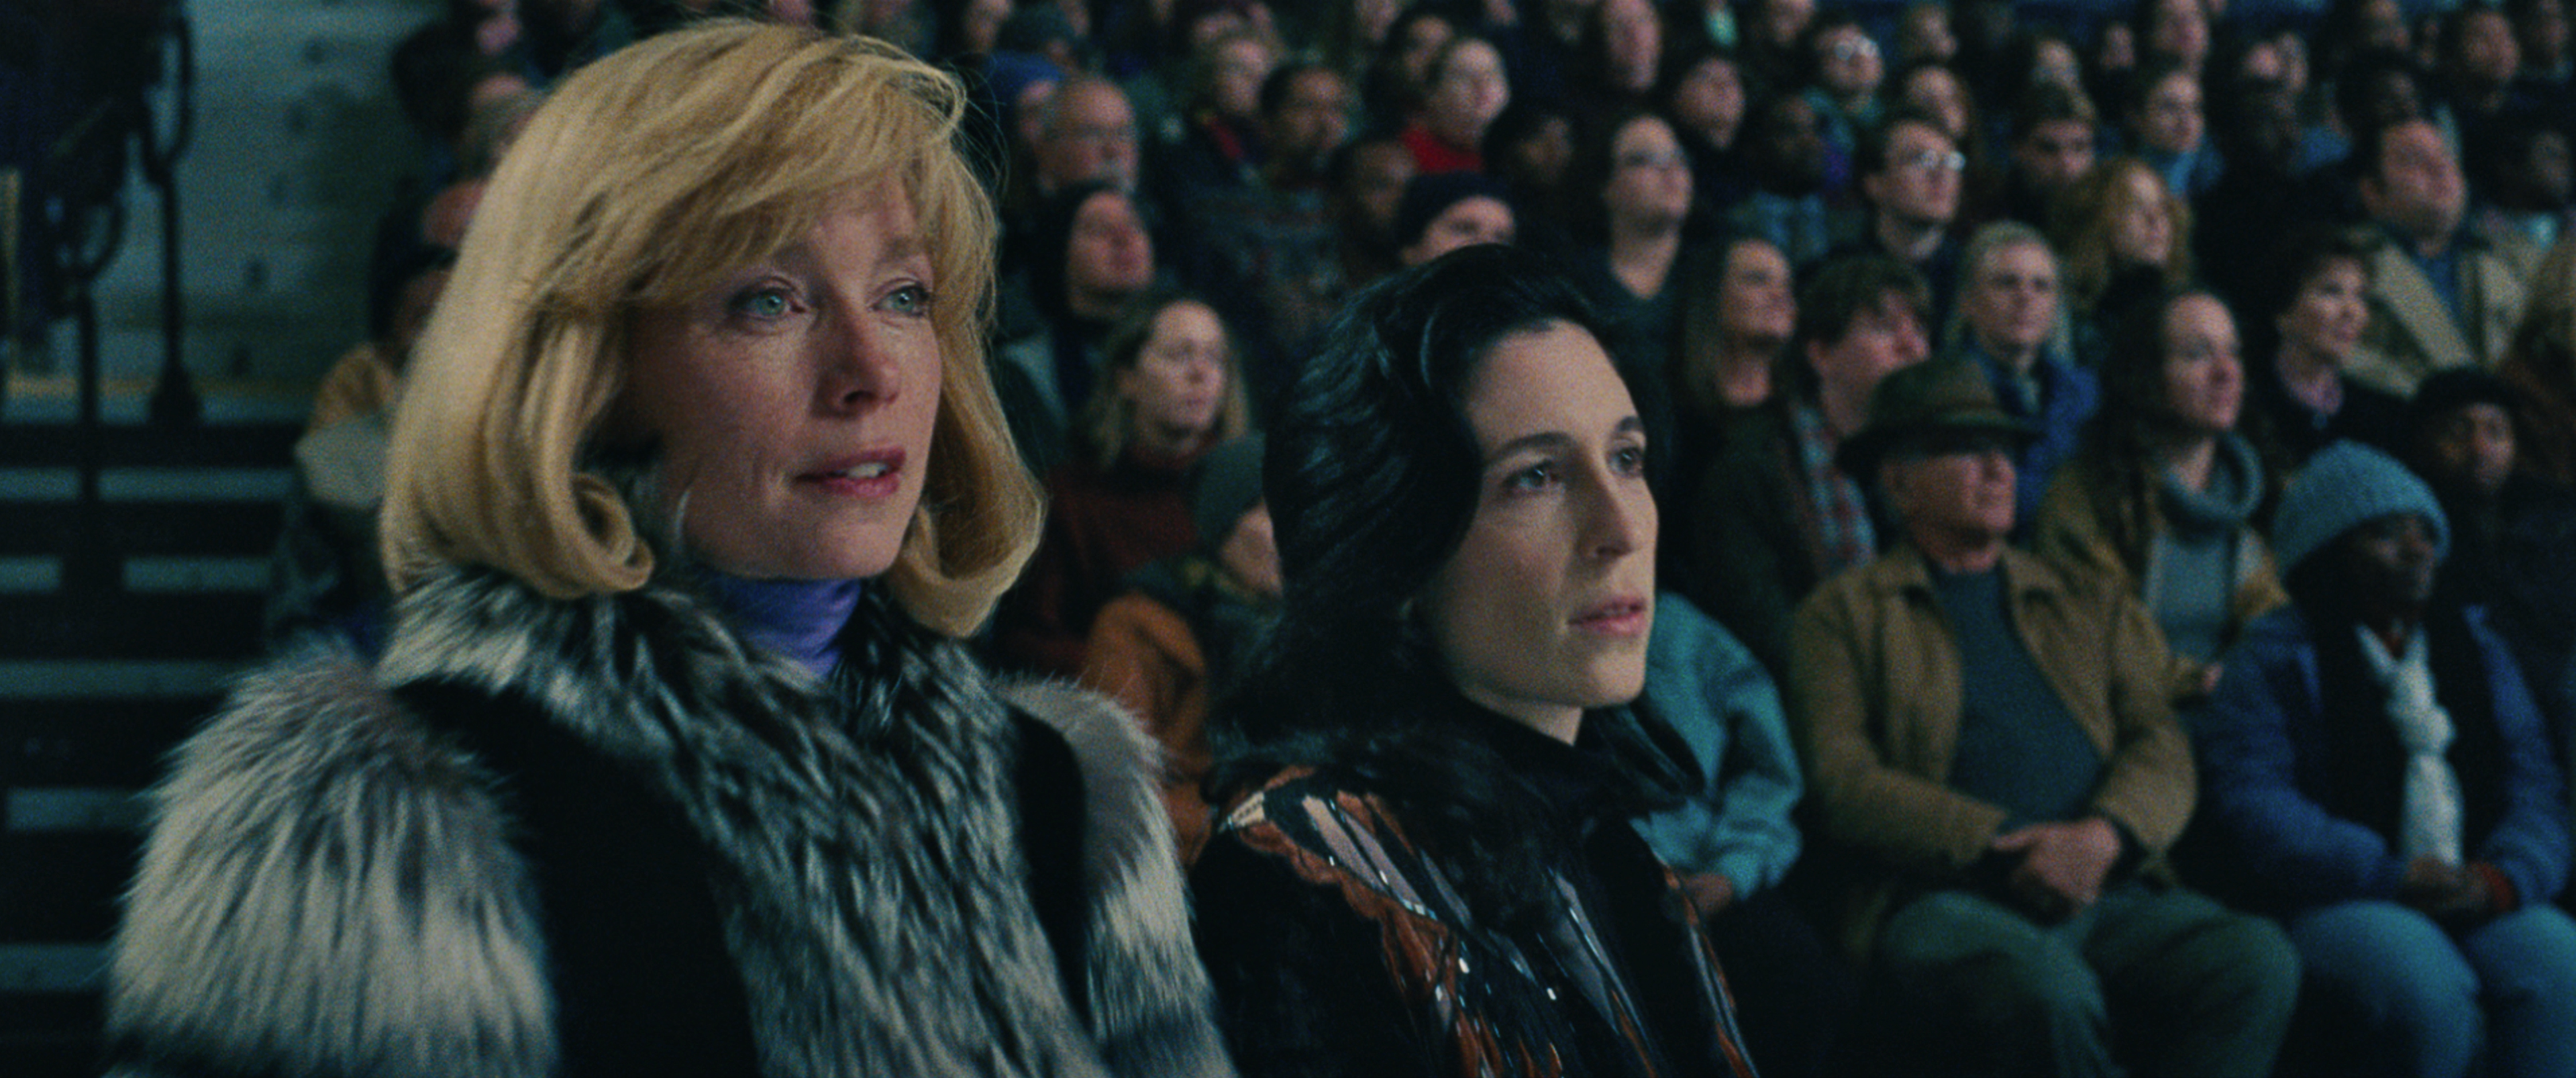 5- Coach Diane Rawlinson (Julianne Nicholson) watches the ice in I, TONYA, courtesy of NEON and 30WEST